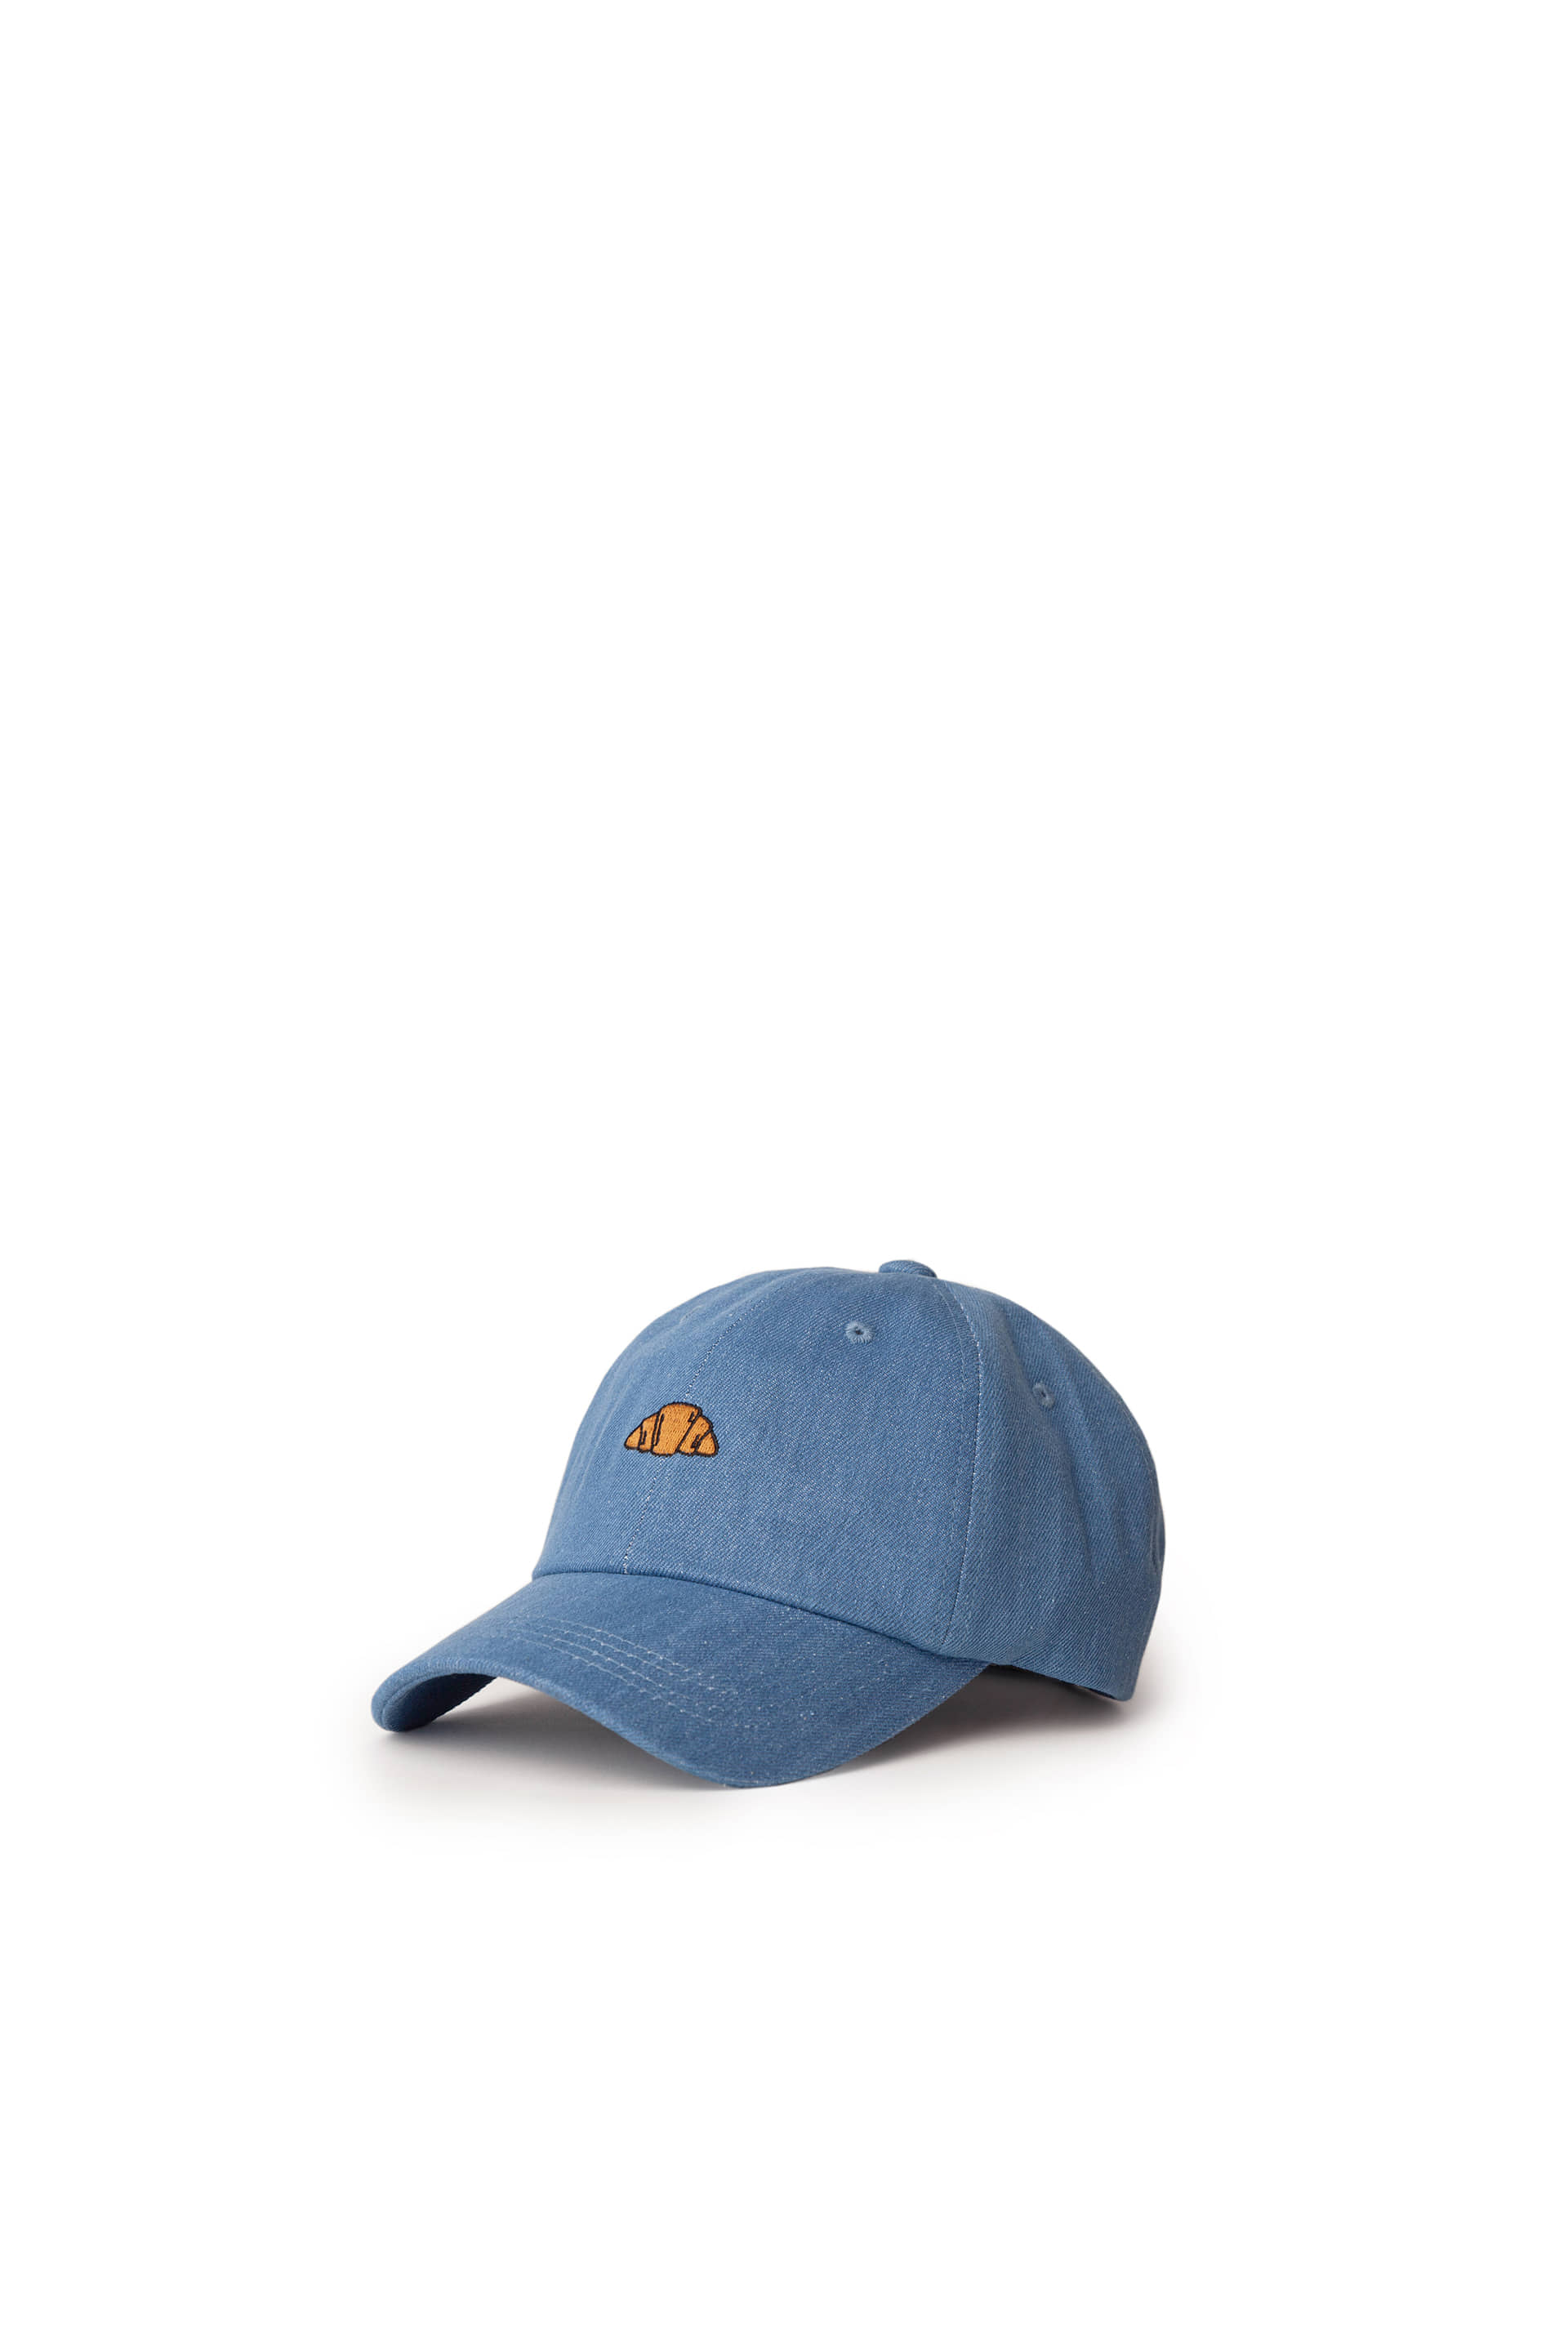 BALL CAP BLUE